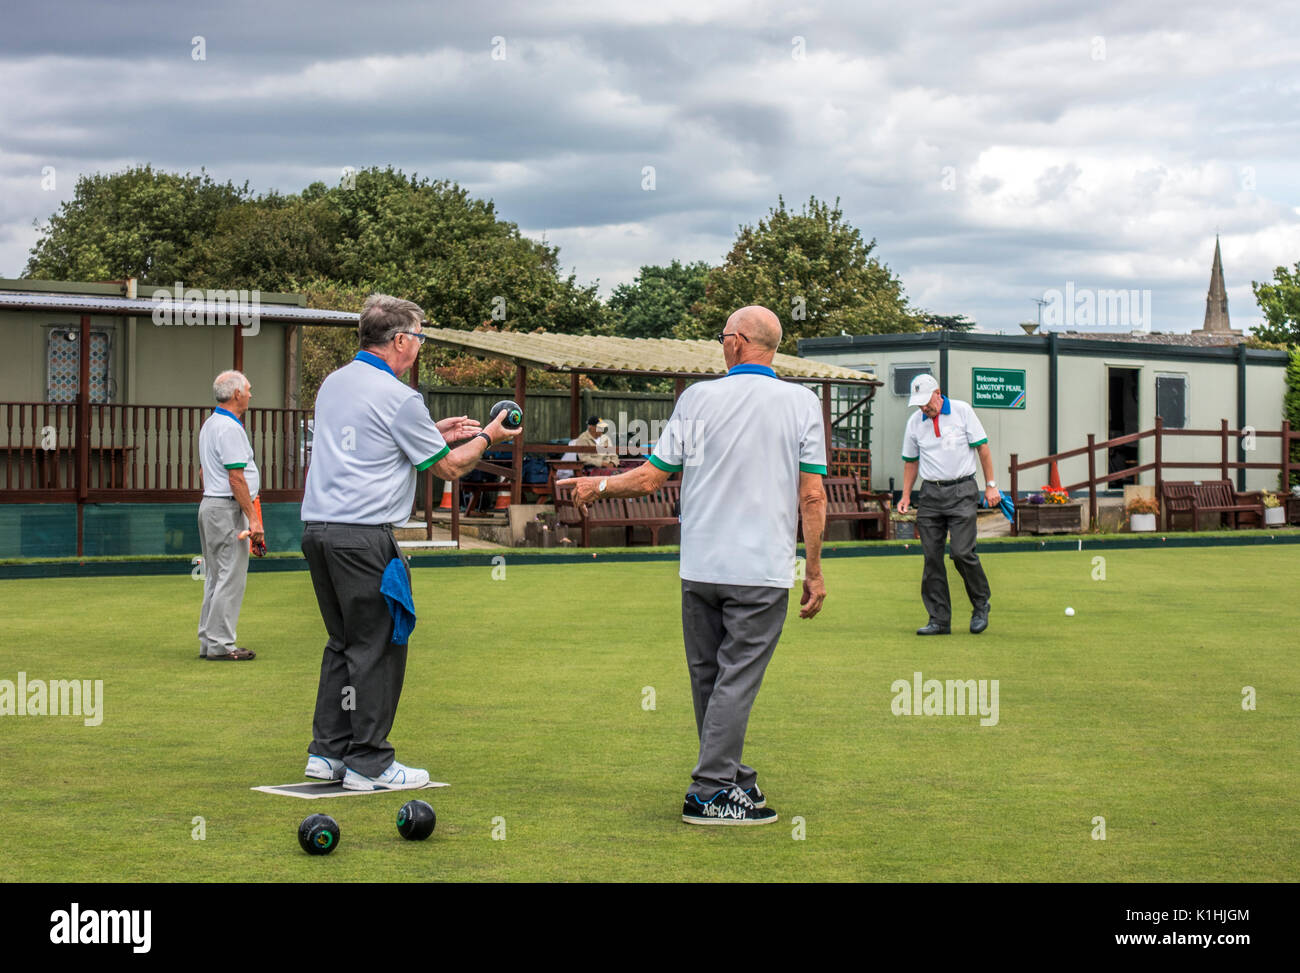 bowling green single men Are you looking for bowling green older men search through the latest members below to see your ideal partner send a message and arrange to meetup later tonight we have hundreds of members that just can't wait to date somebody just like , senior next.